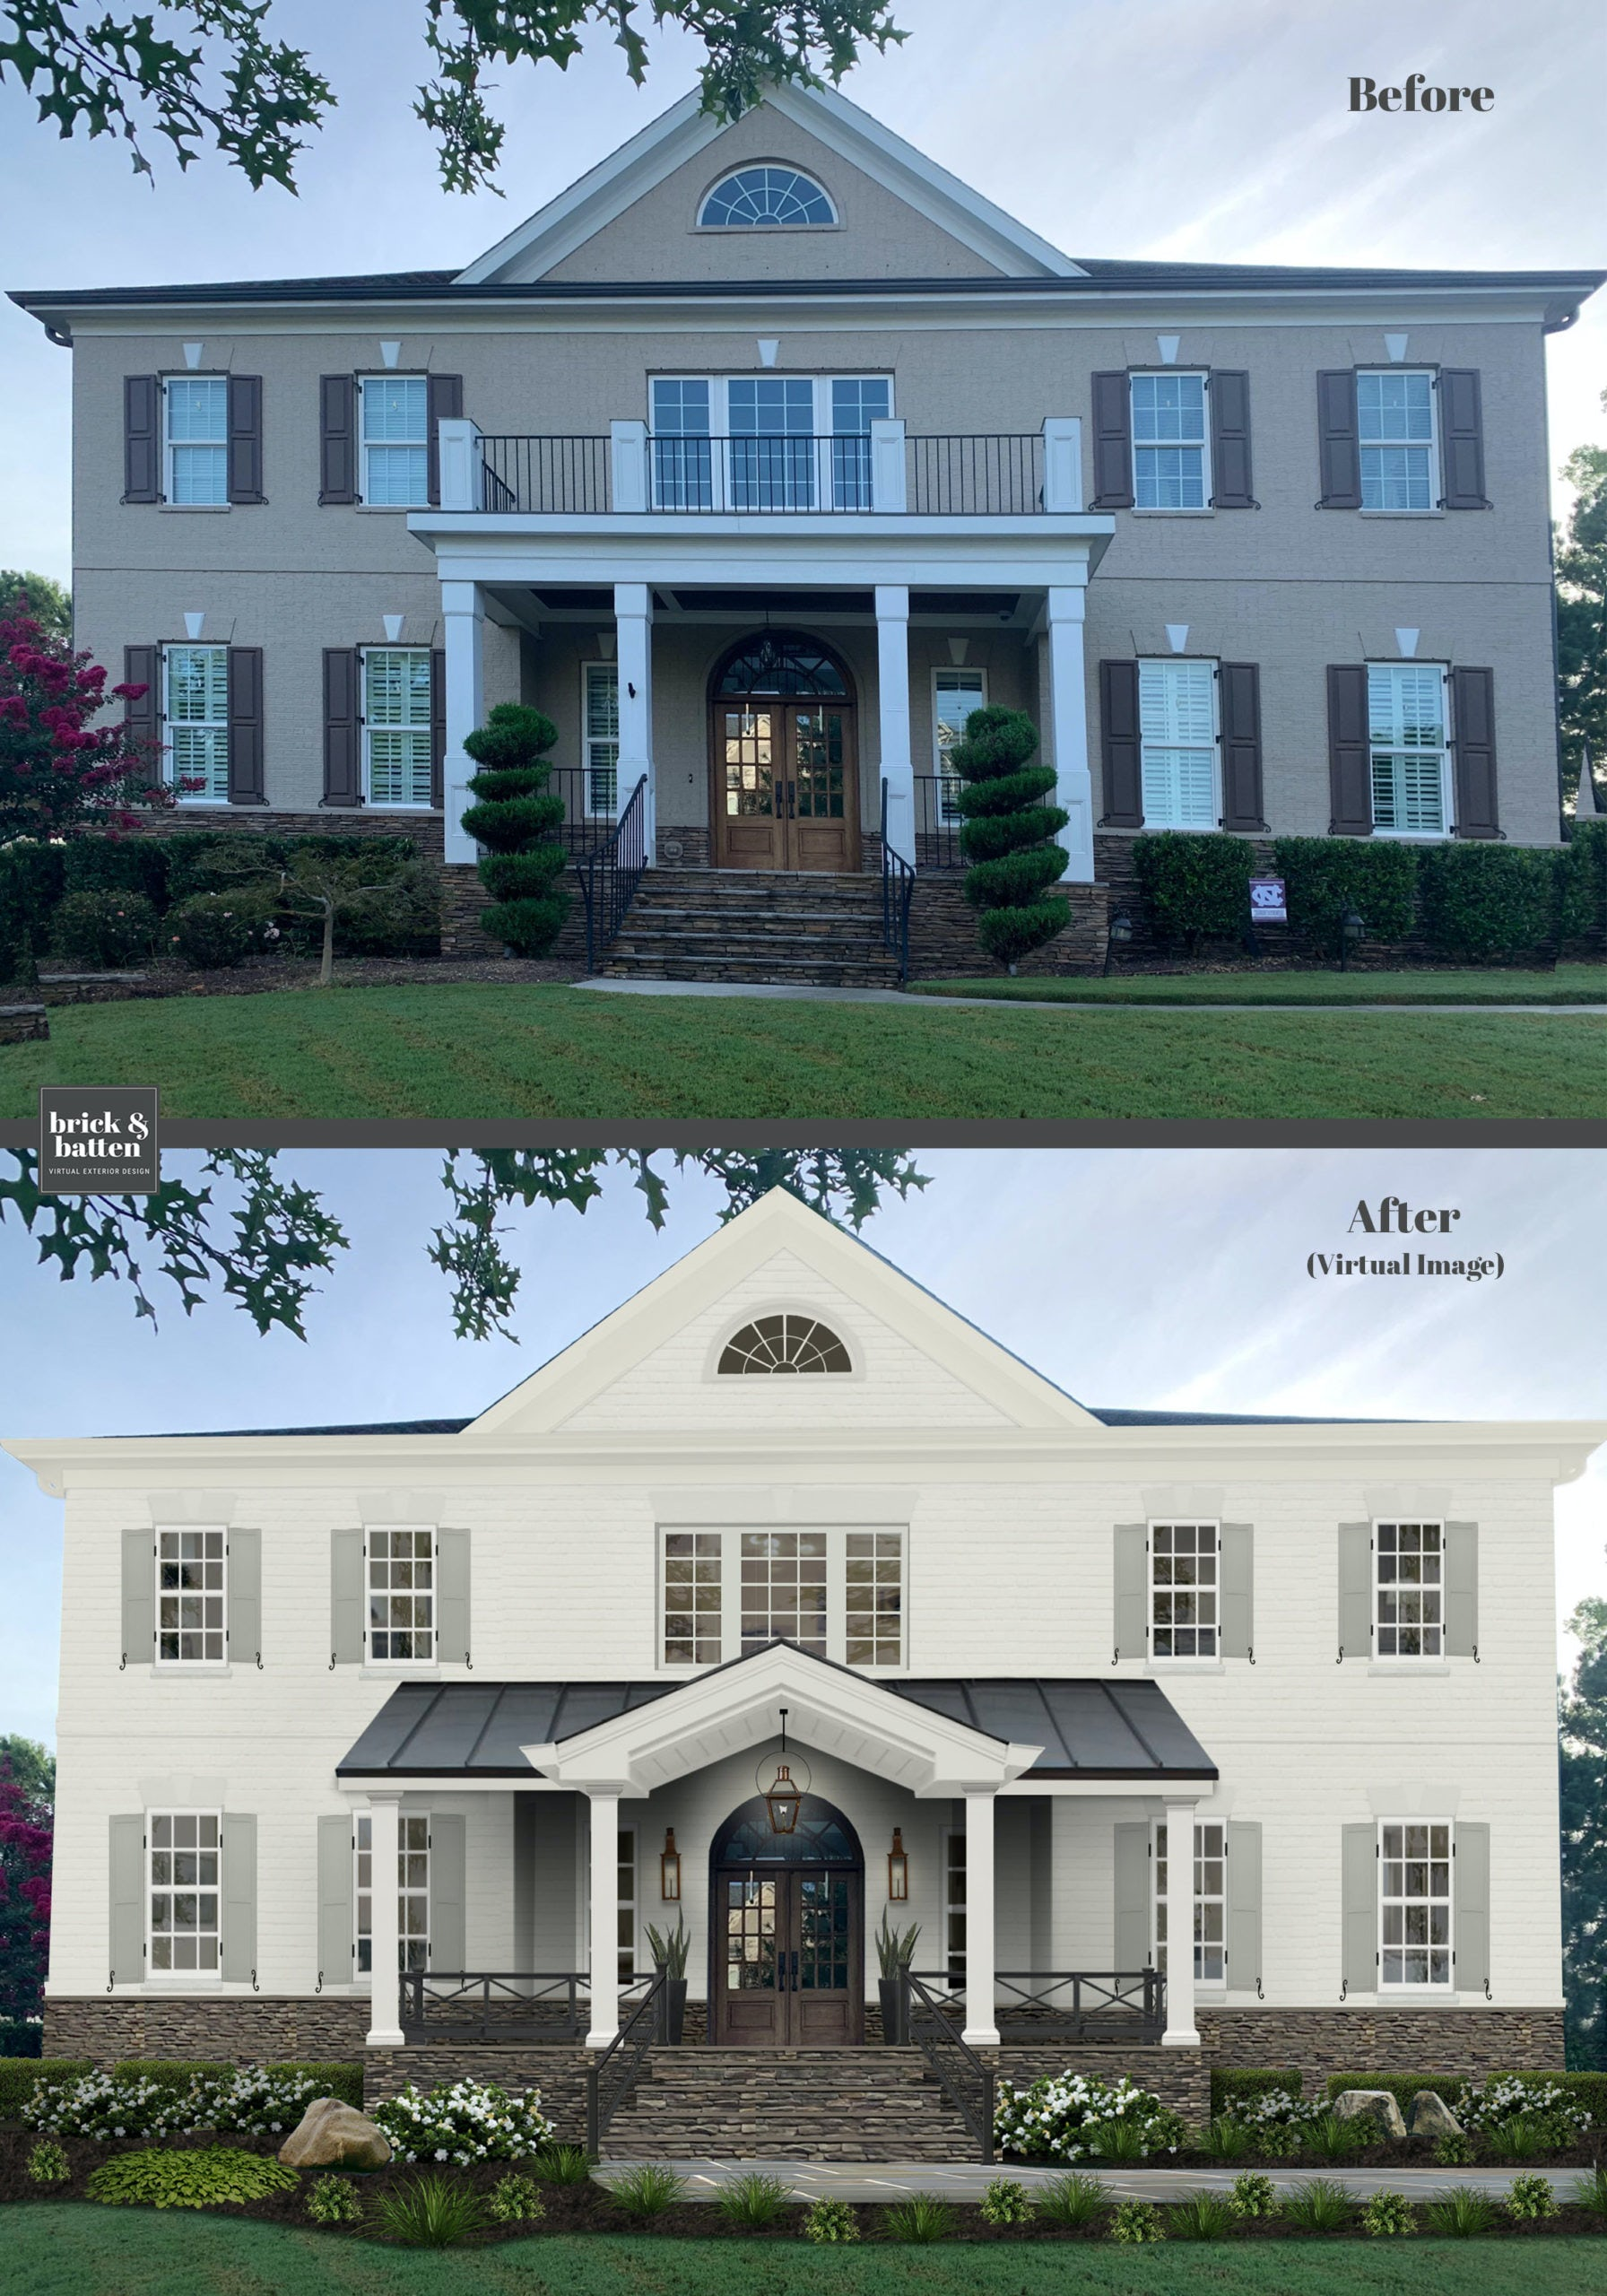 Before and after of a home with white paint and new shutters